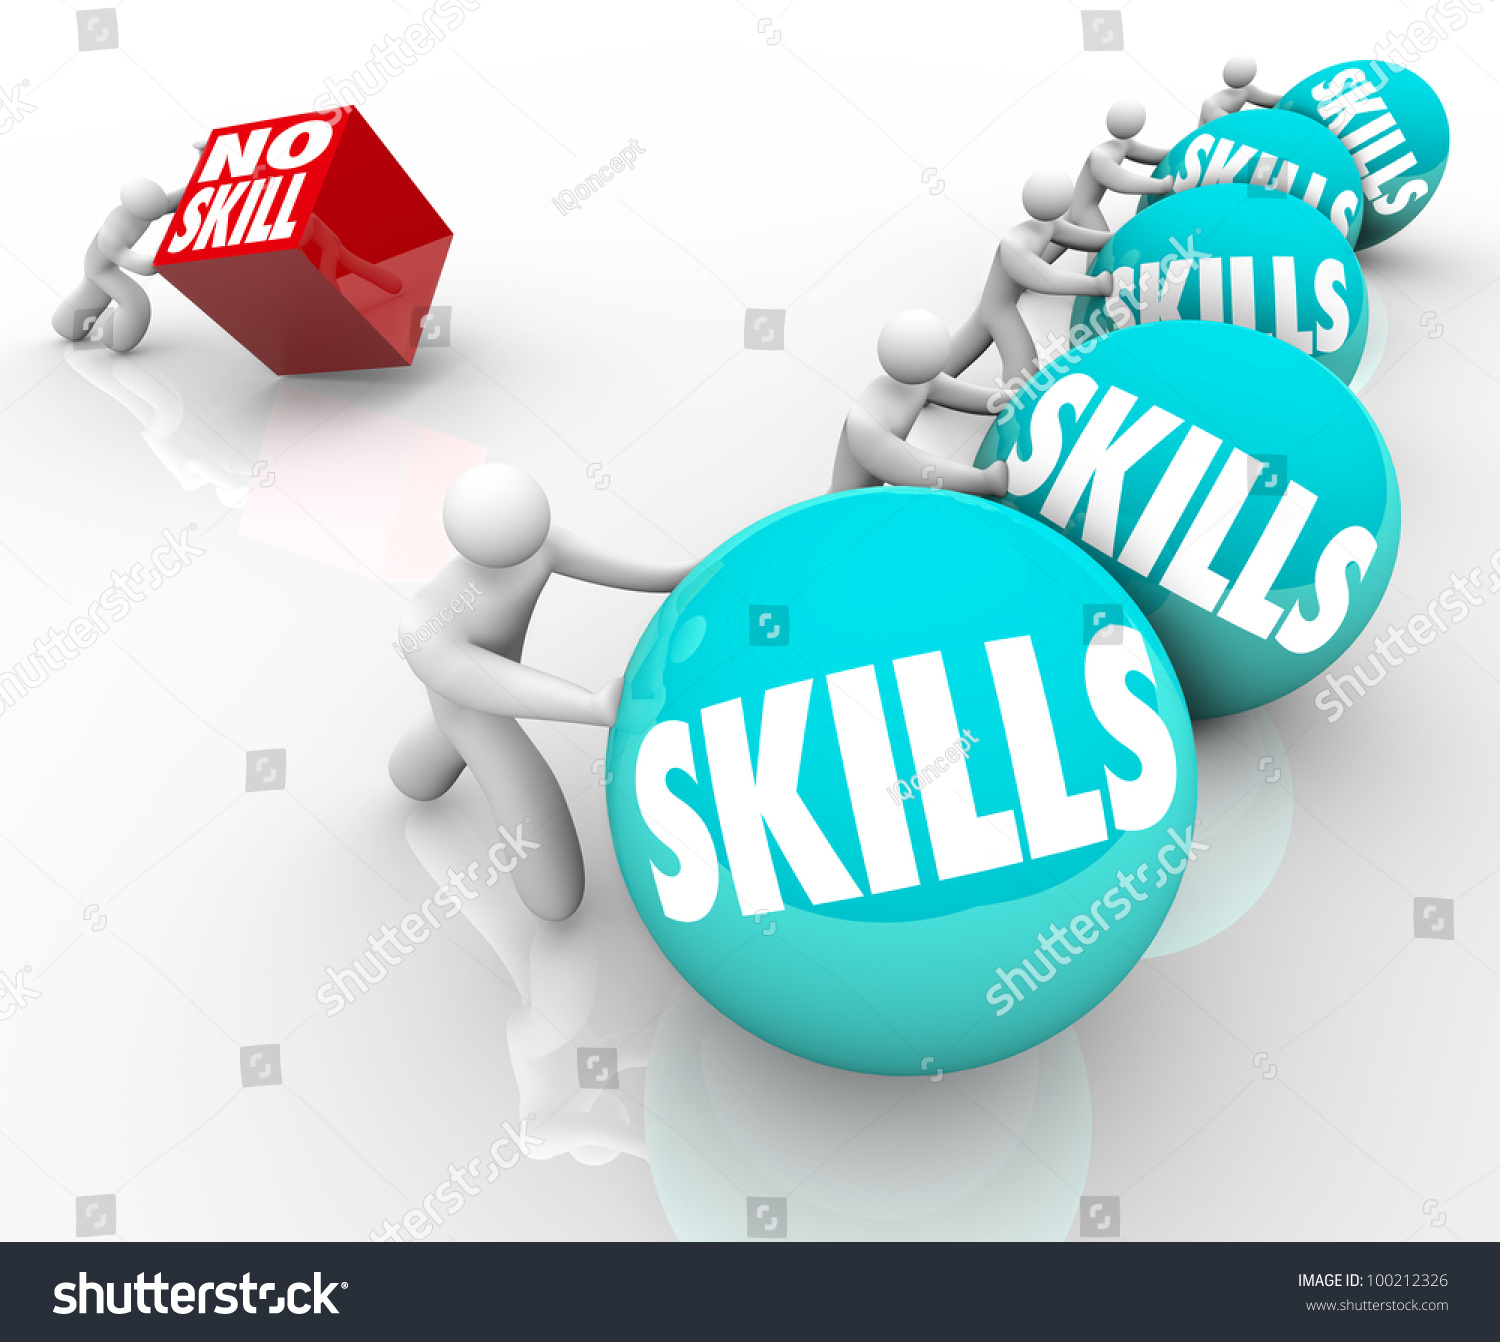 one person no skills pushes metaphorical stock illustration one person no skills pushes a metaphorical cube representing the challenges he faces in life